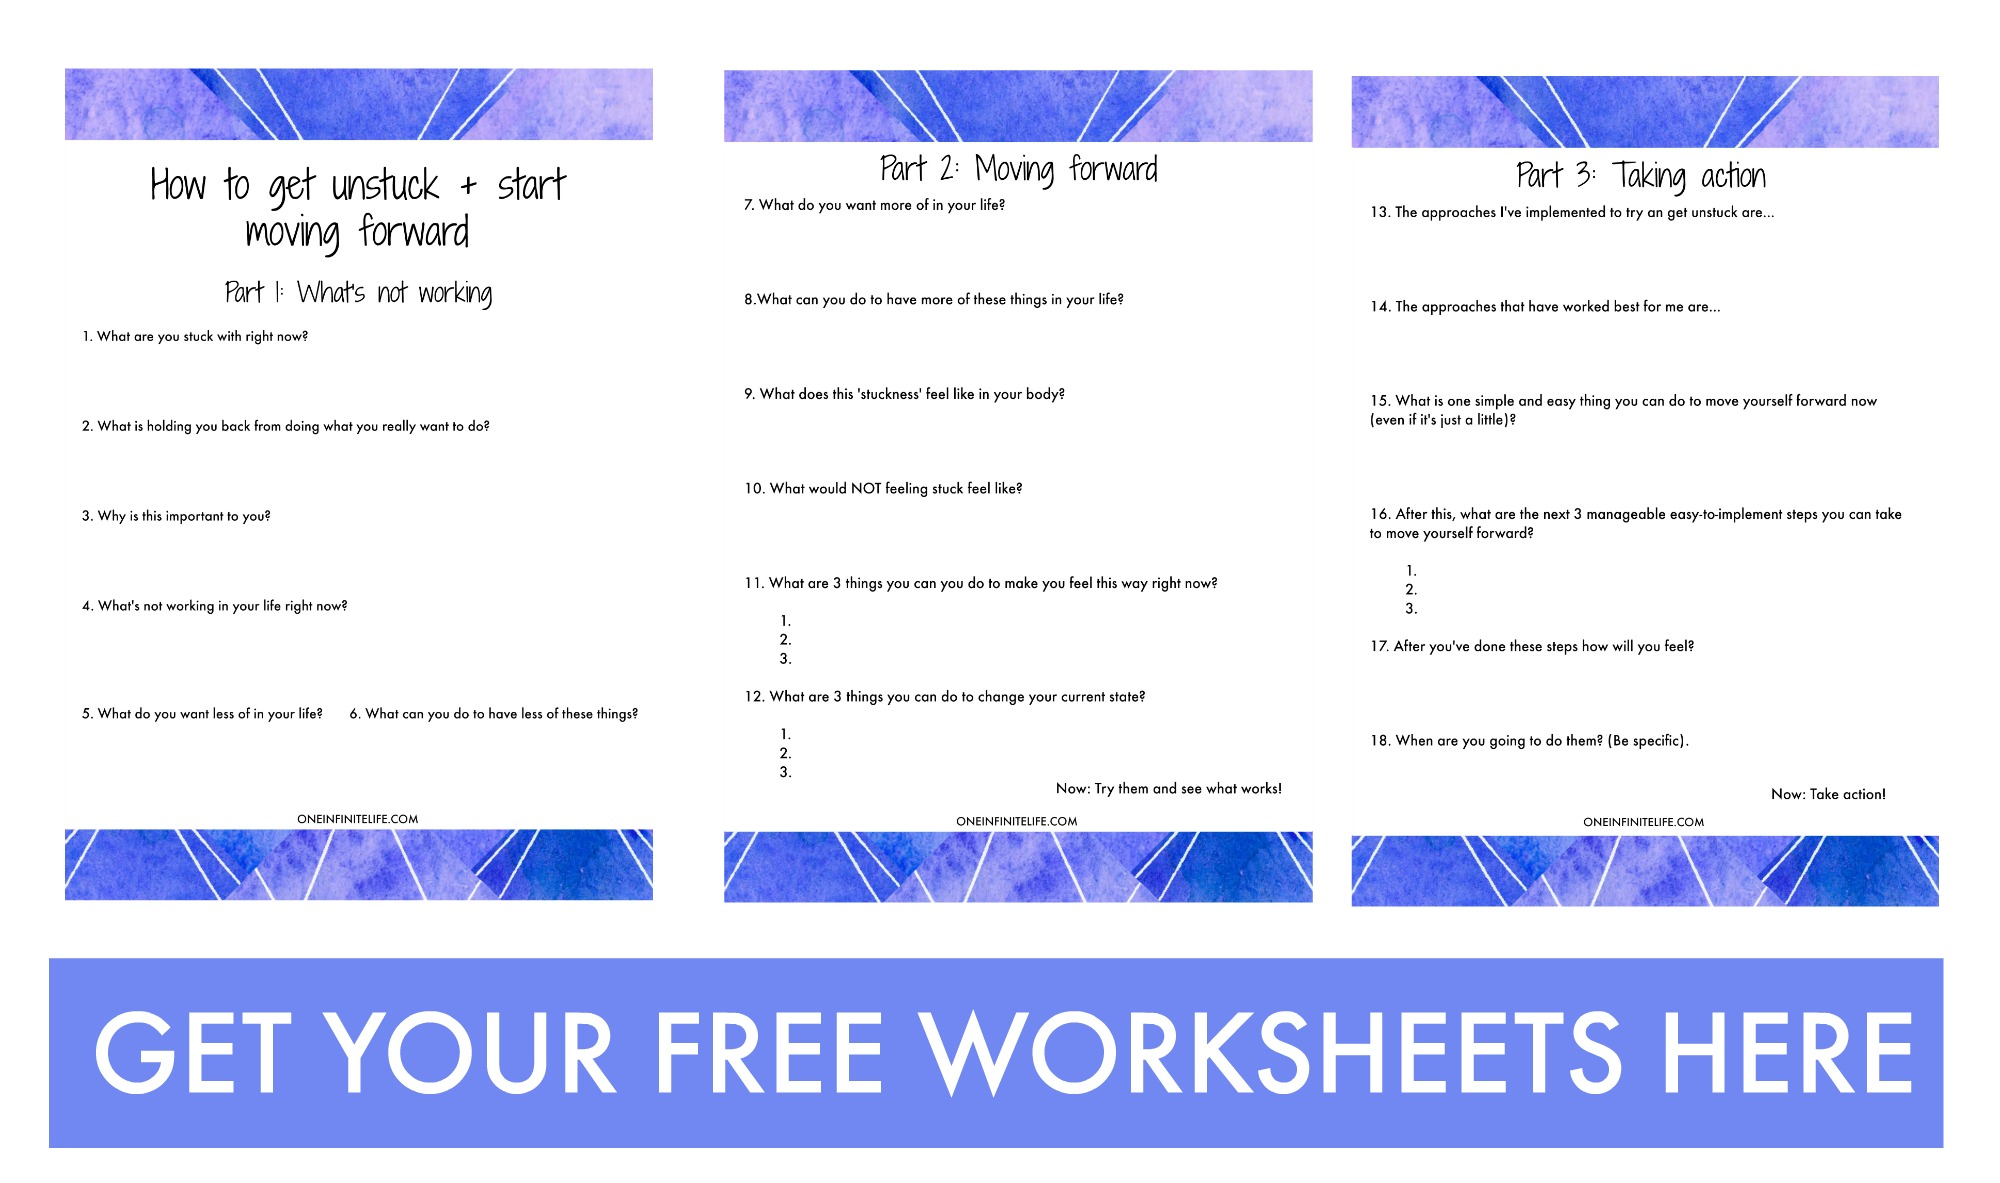 FREE WORKSHEETS: How to get unstuck and start moving forward http://bit.ly/1VDRGjk